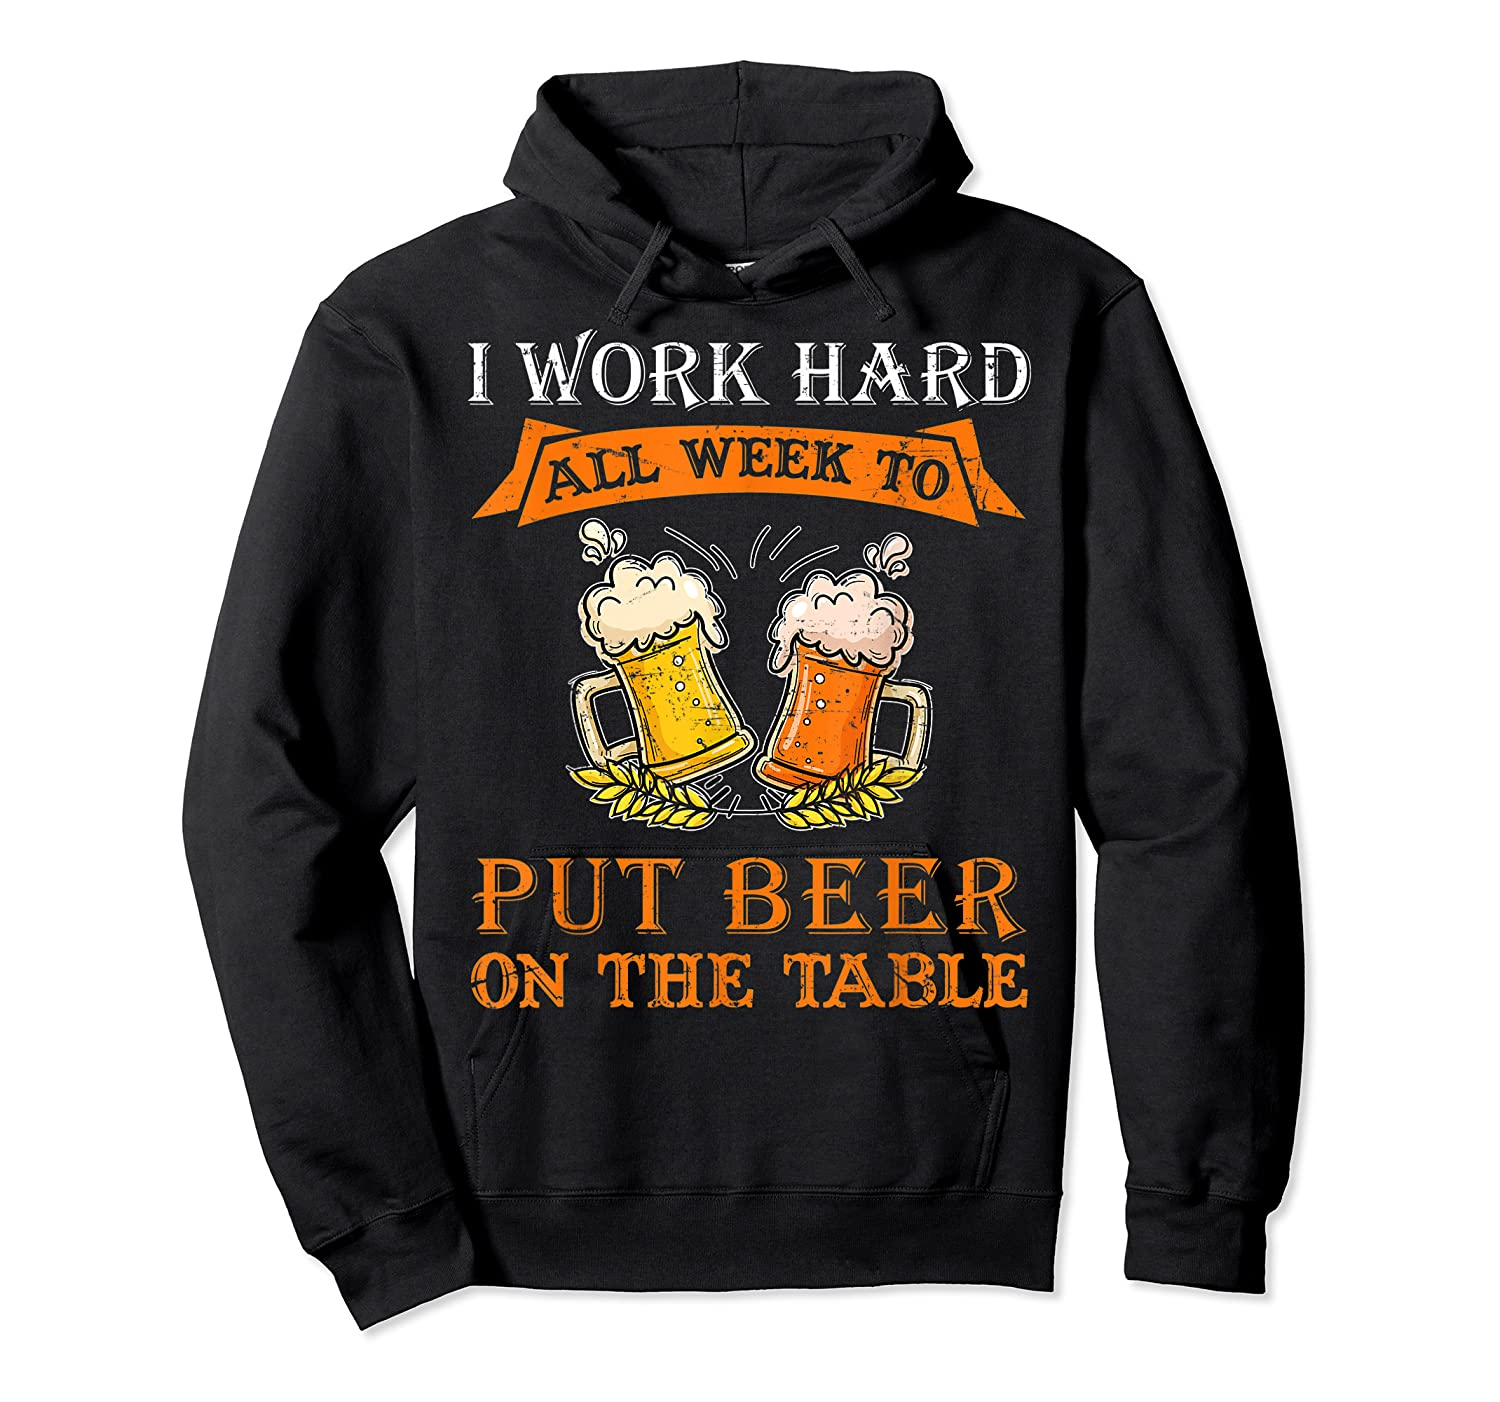 I Work Hard All Week To Put Beer On The Table Funny Beer Tsh Shirts Unisex Pullover Hoodie